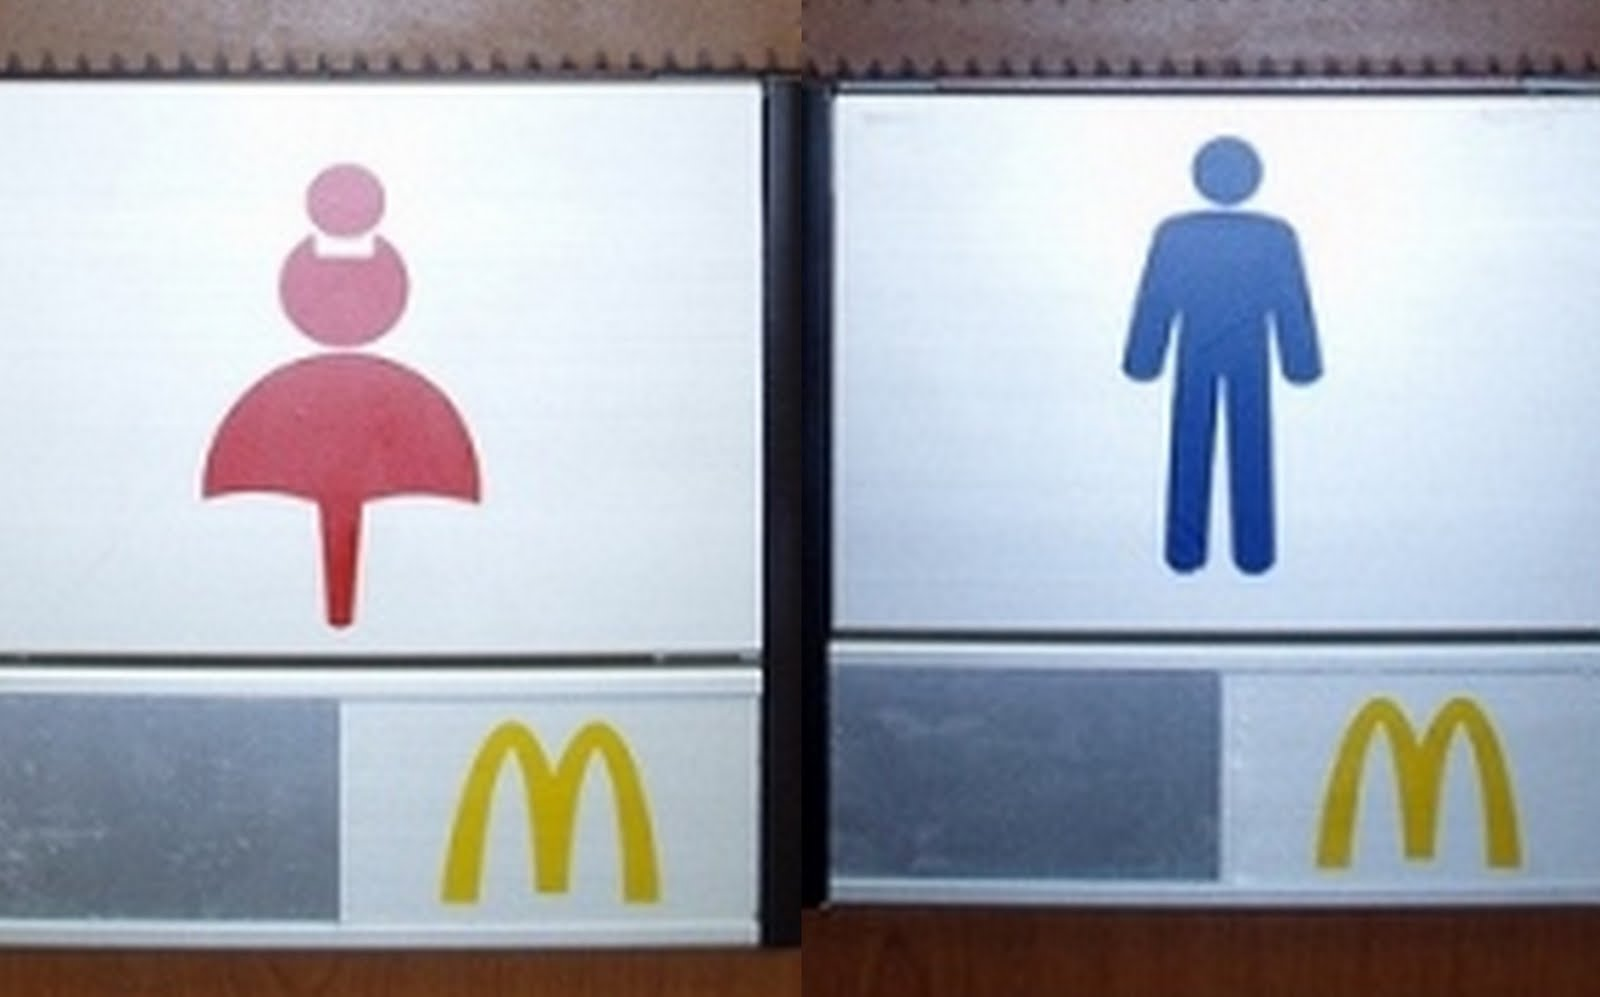 Bathroom Signs South Africa go where? sex, gender, and toilets - sociological images